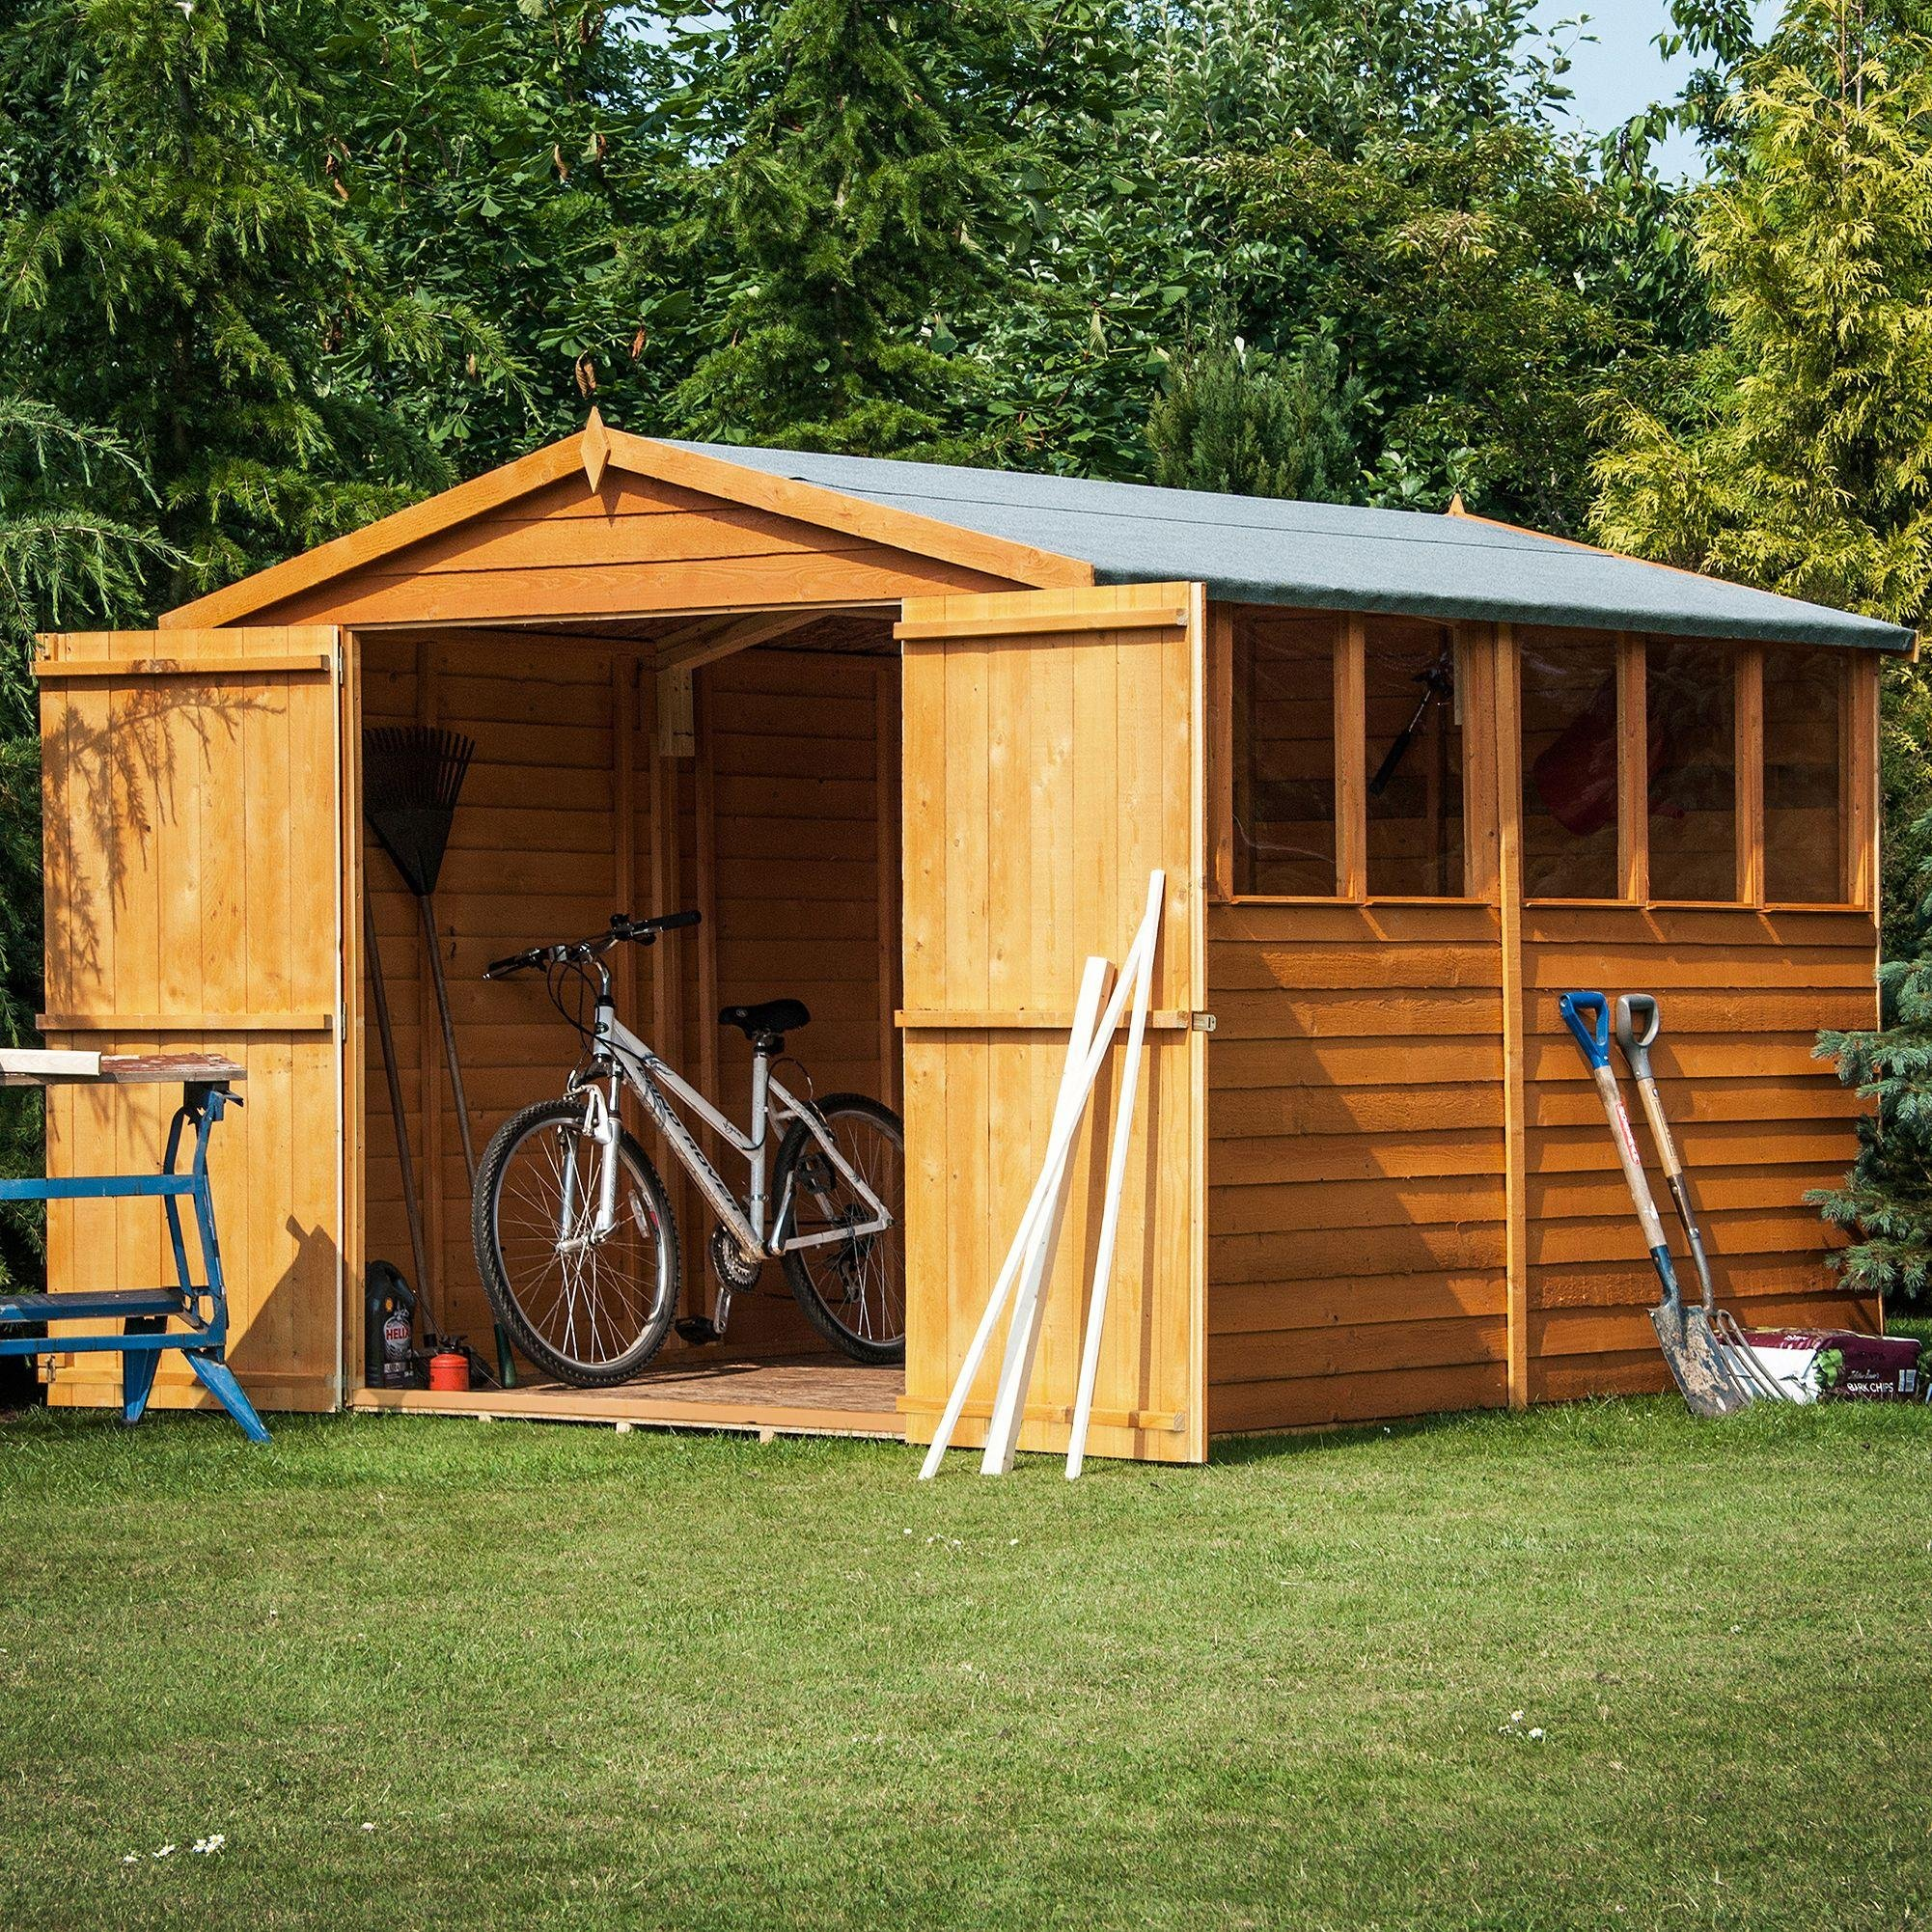 shed sale discounts on wooden metal sheds summer houses. Black Bedroom Furniture Sets. Home Design Ideas